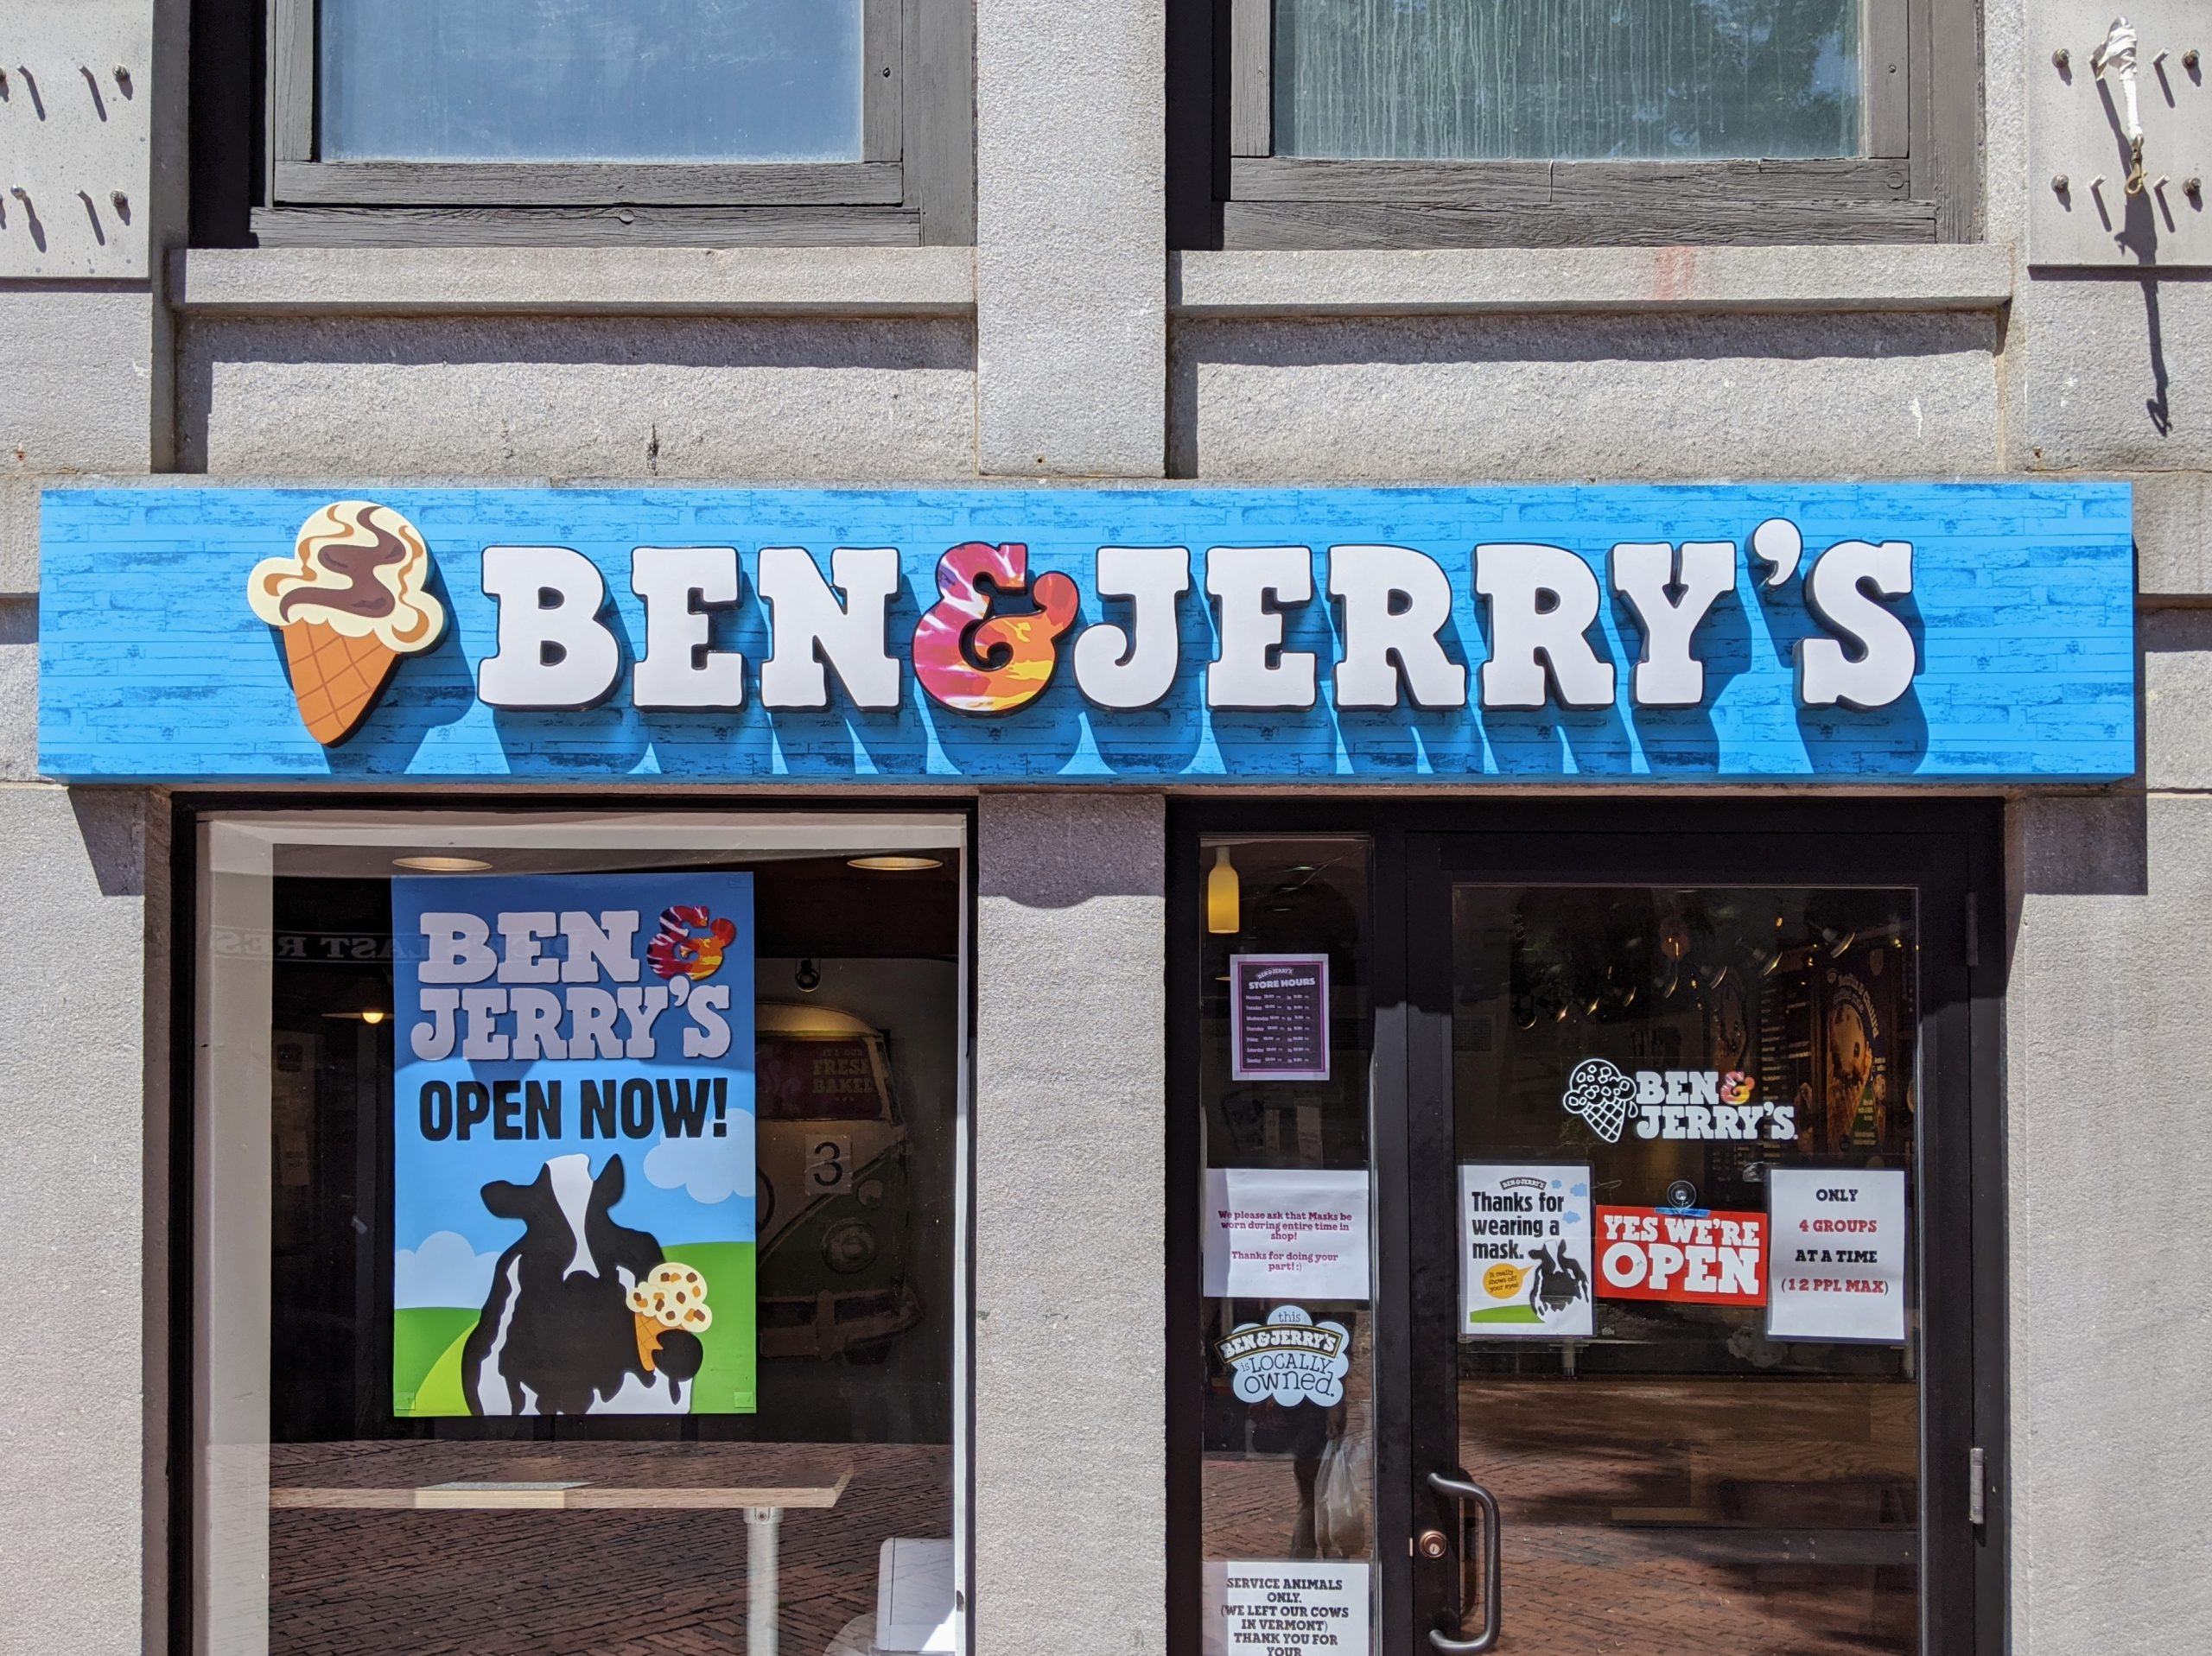 Ben & Jerry's Storefront at Faneuil Hall in Boston